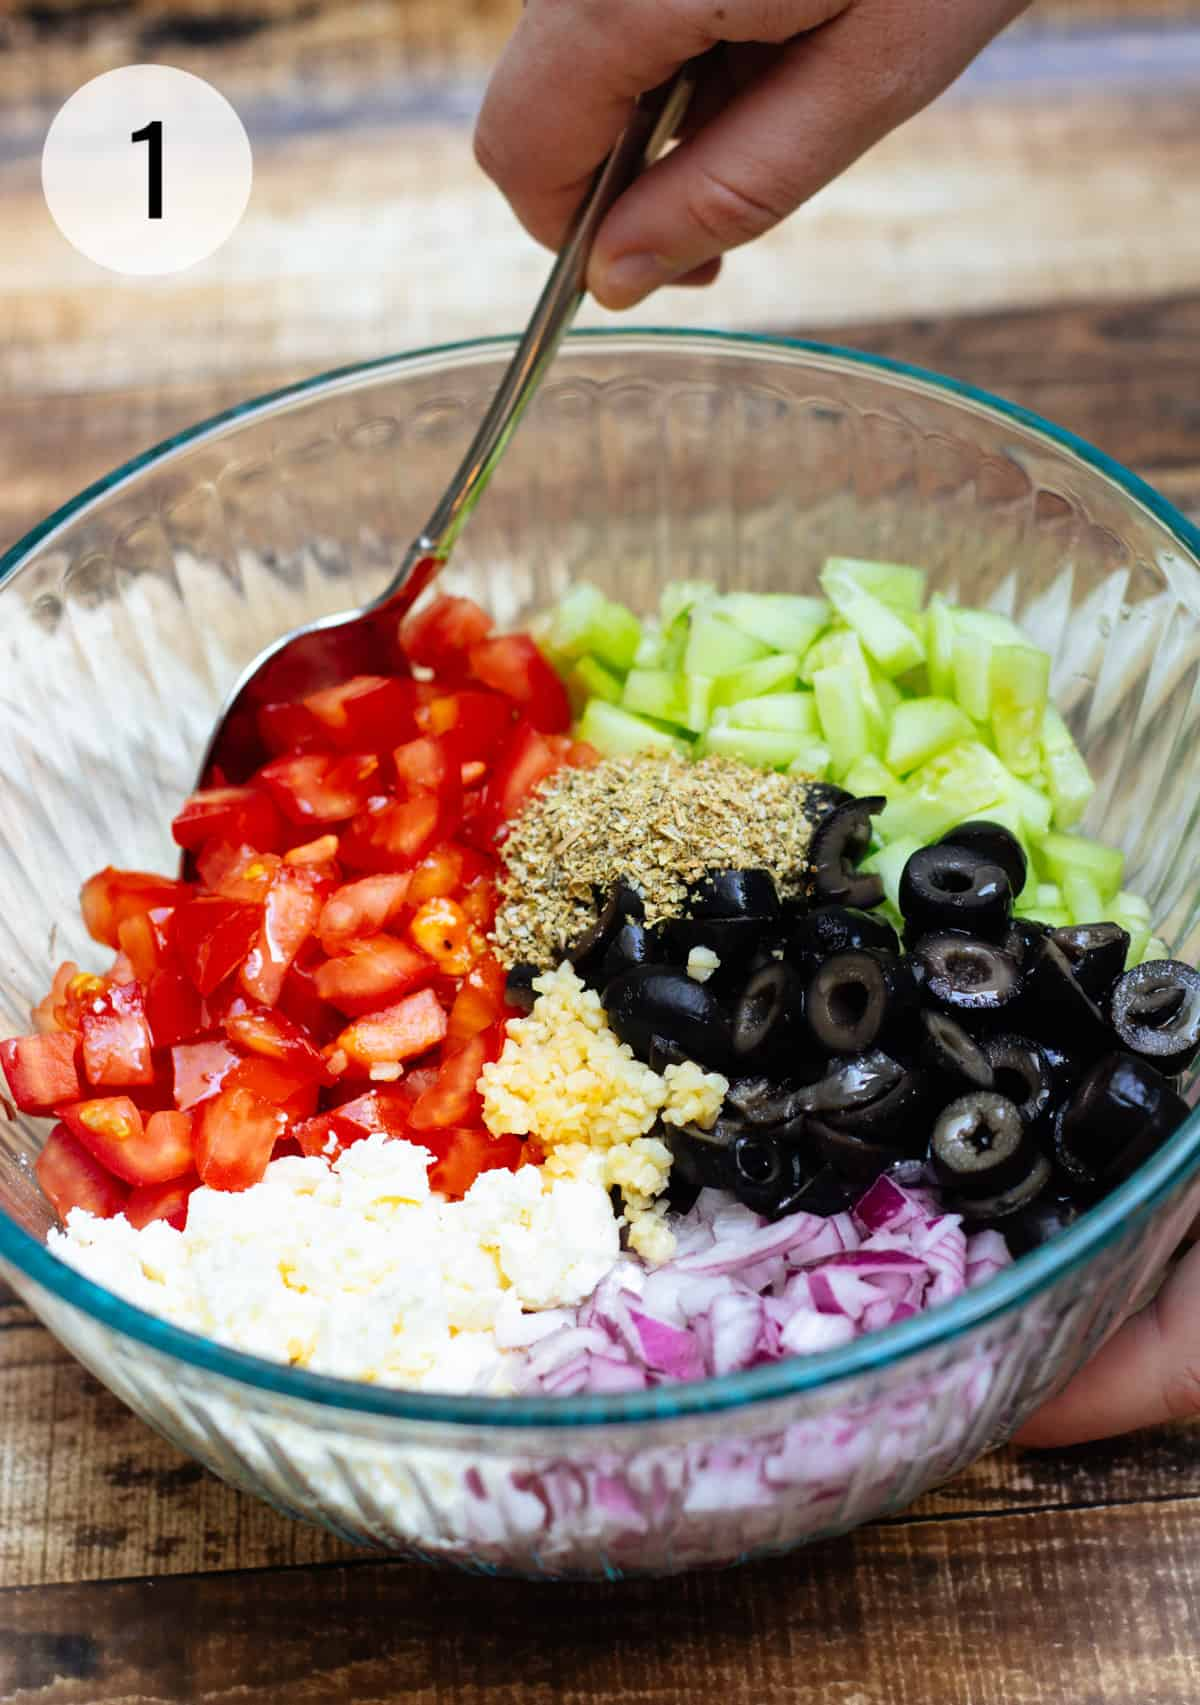 Glass bowl with tomatoes, cucumbers, black olives, purple onion, feta cheese, minced garlic and Greek herbs.